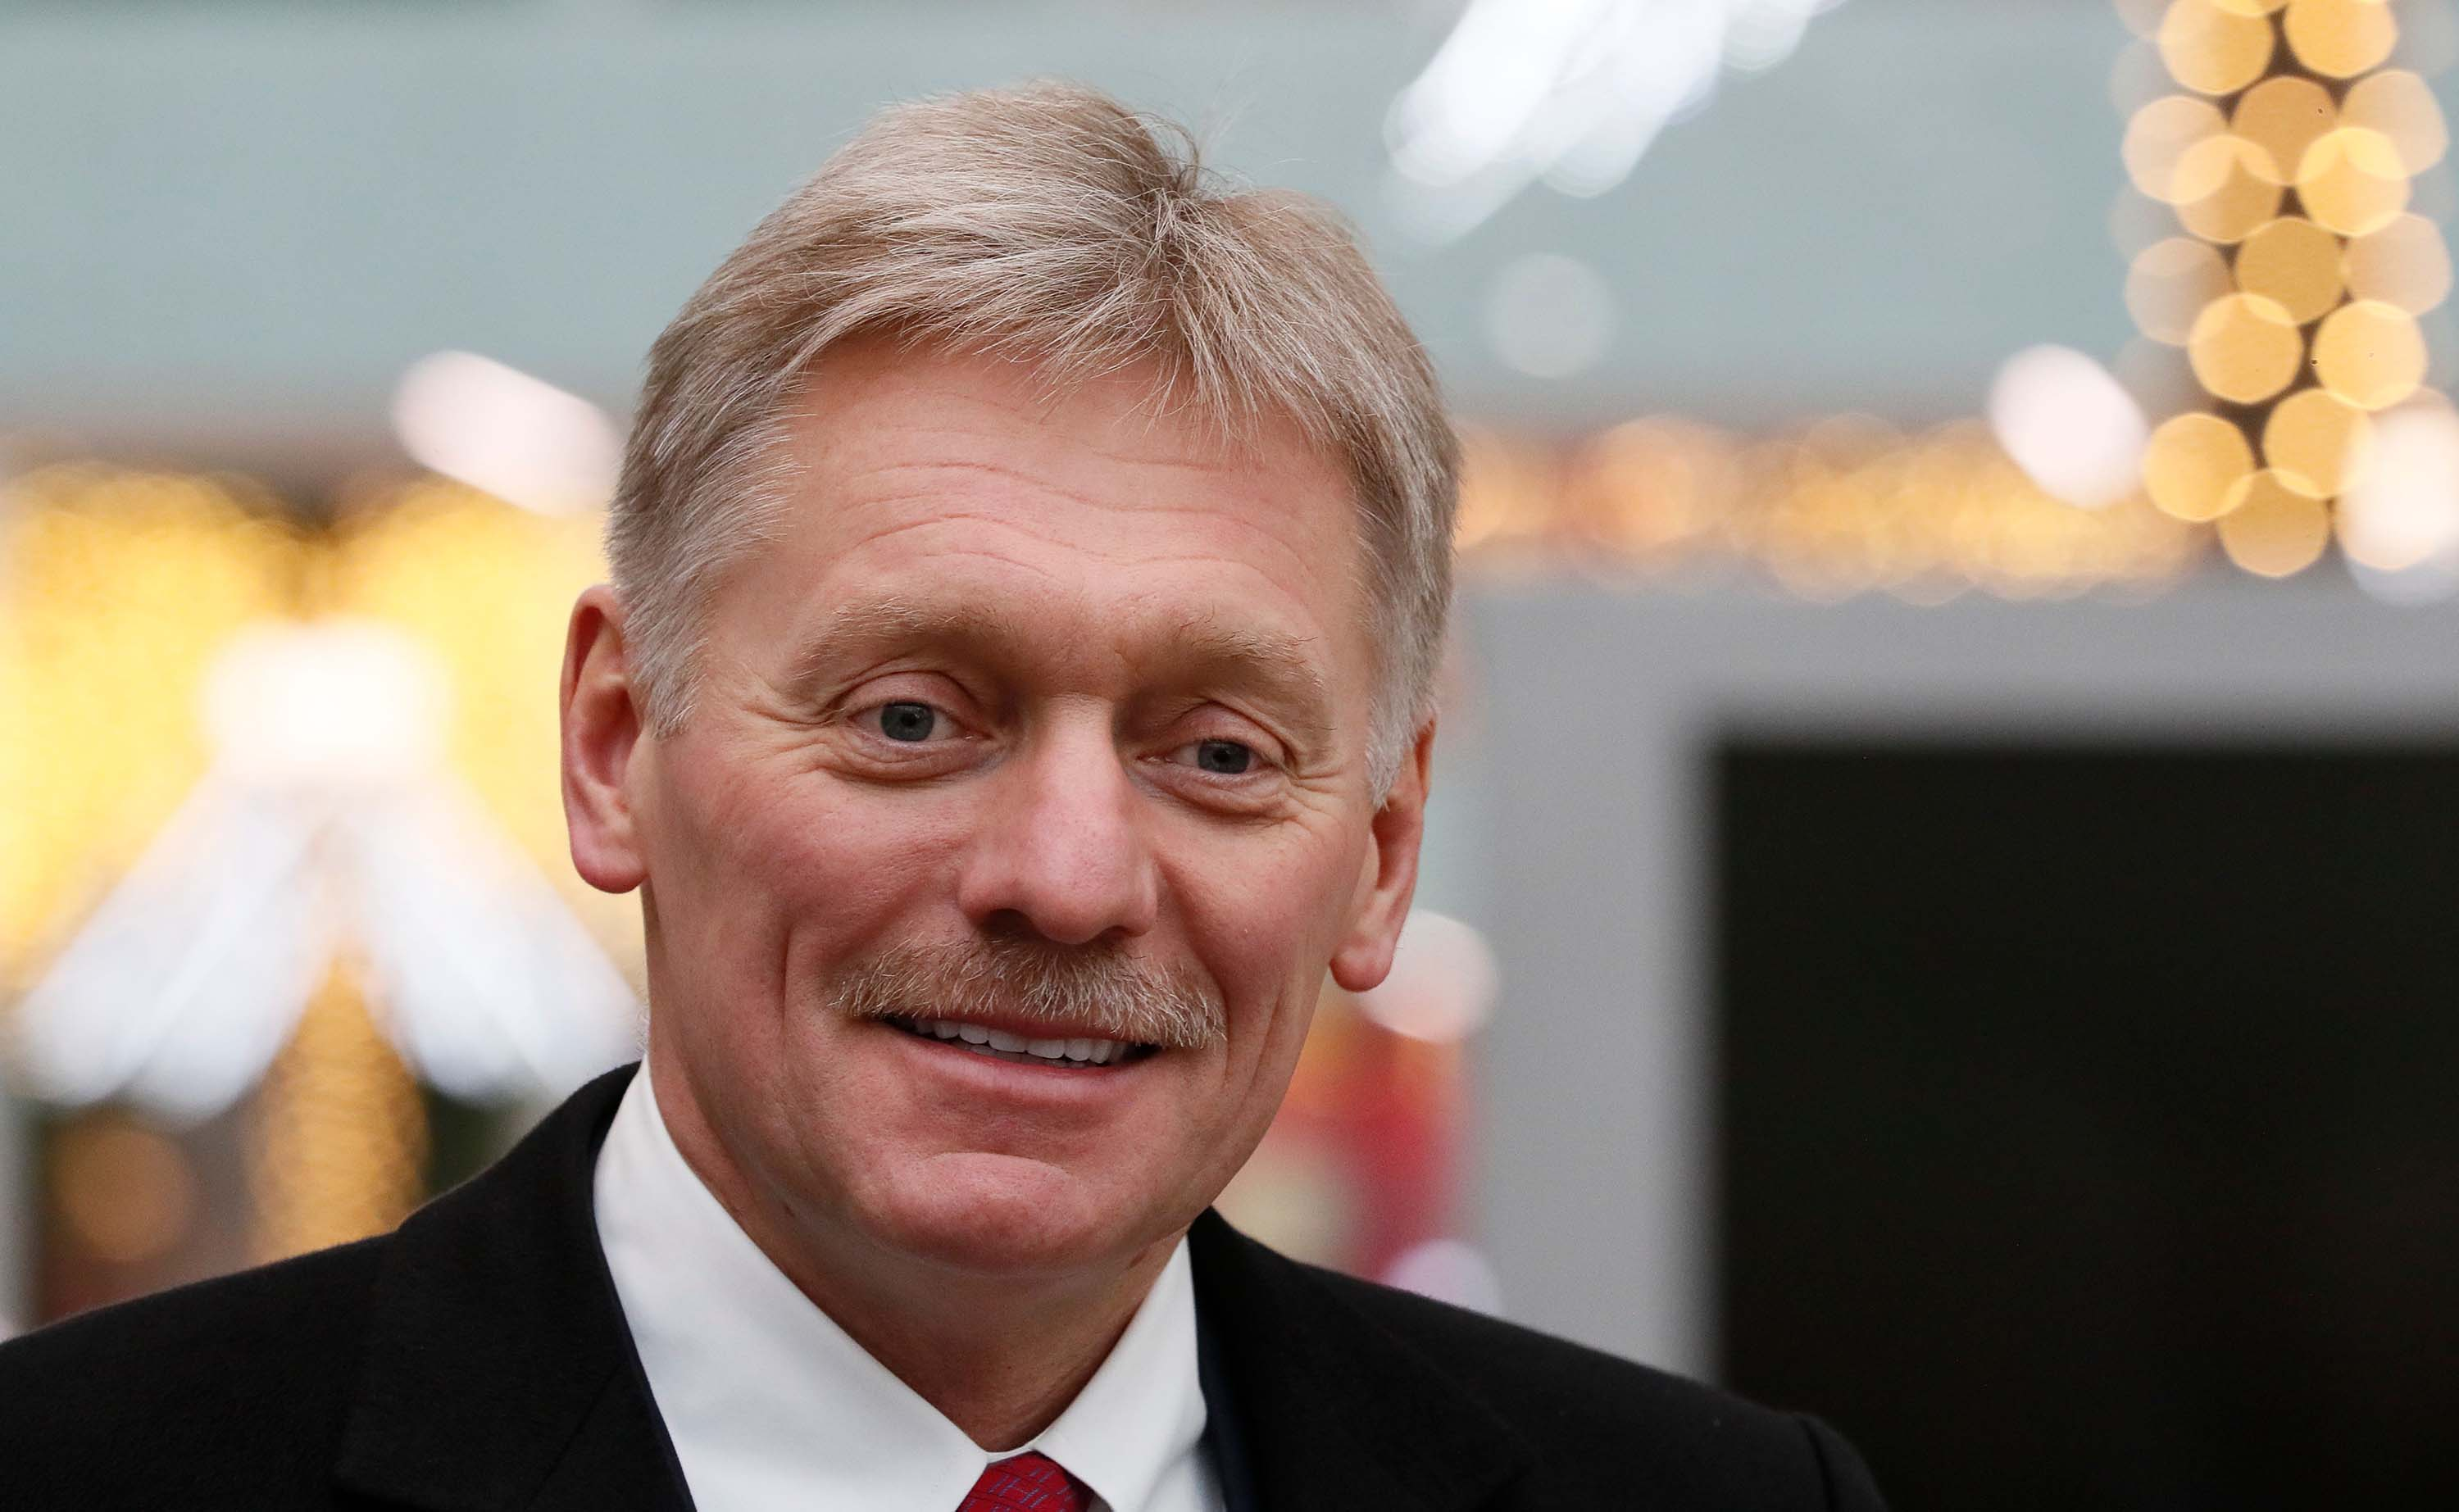 Vladimir Putin's spokesman has been hospitalized with coronavirus